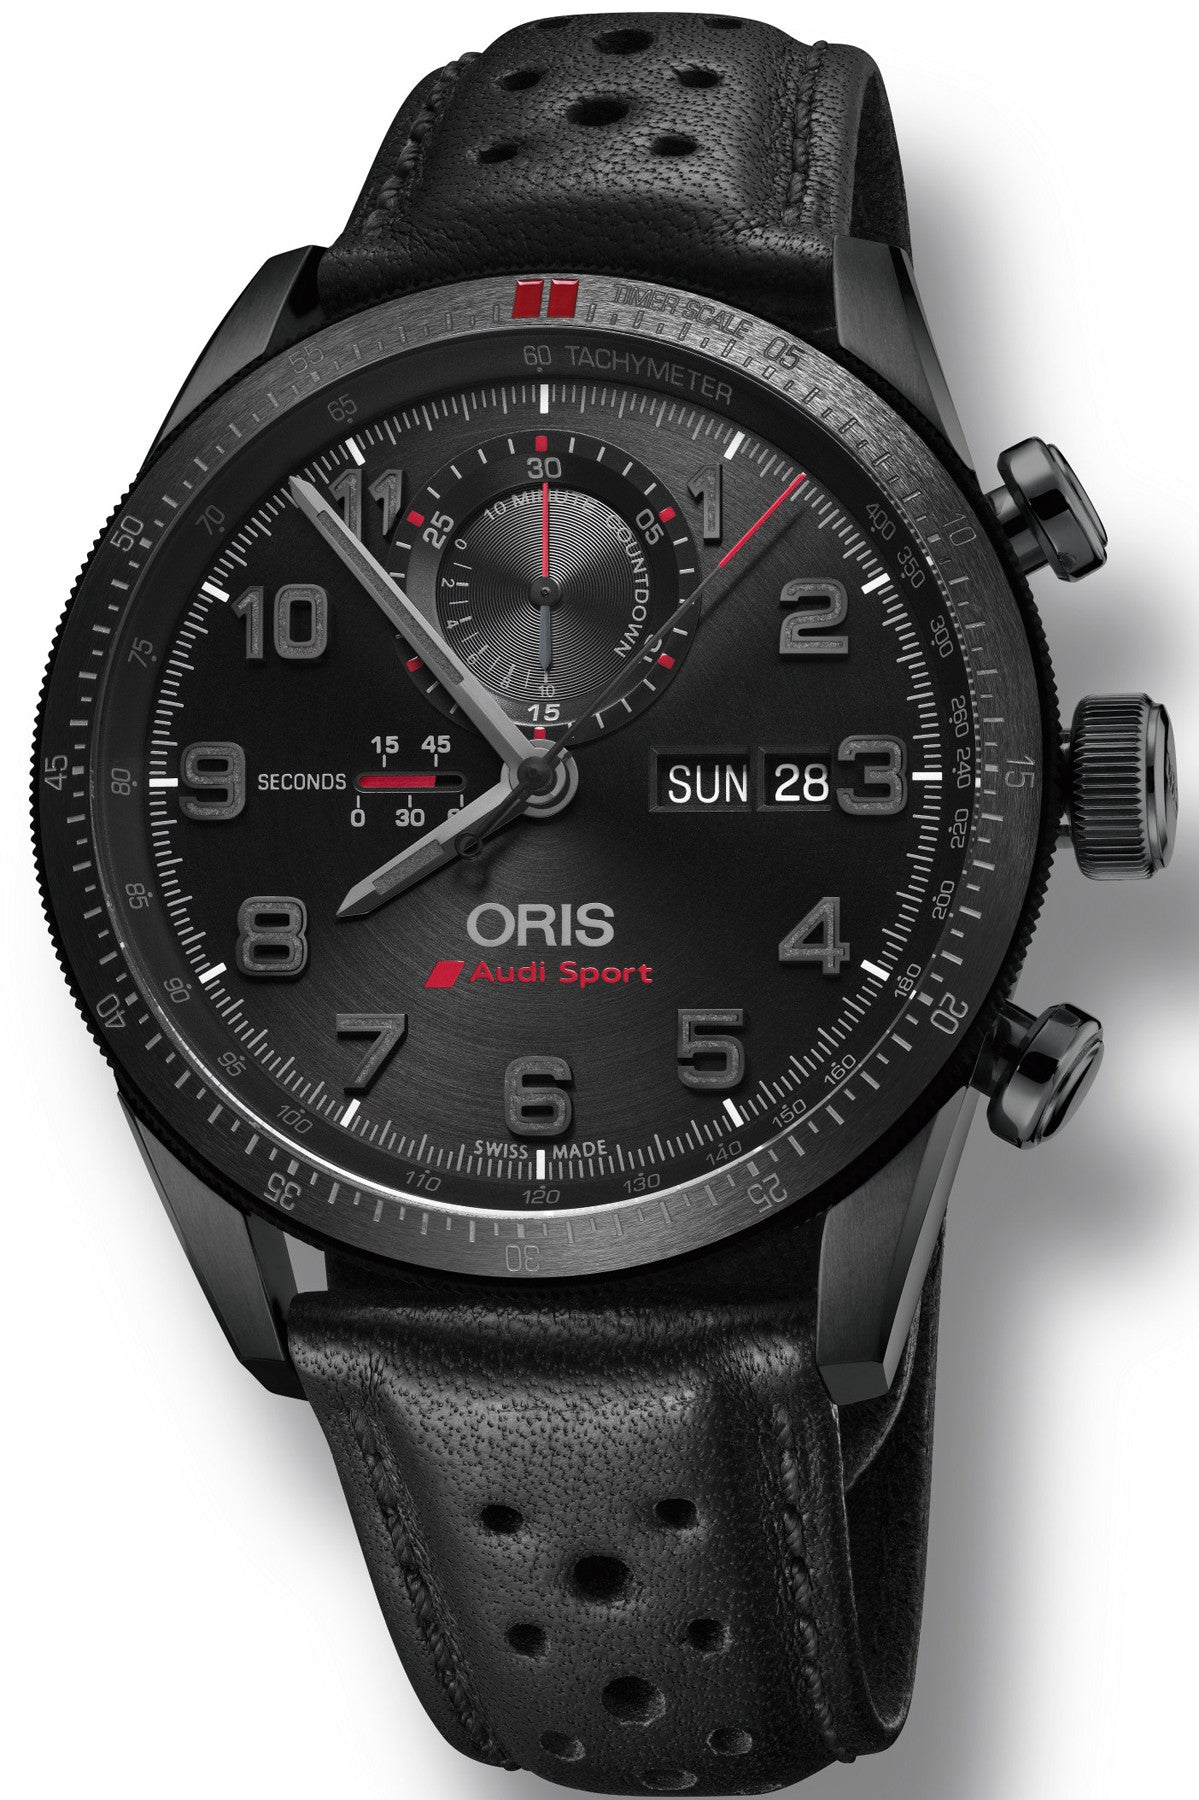 Oris watch audi sport limited edition ii set 01 778 7661 7784 set ls watch for Oris watches